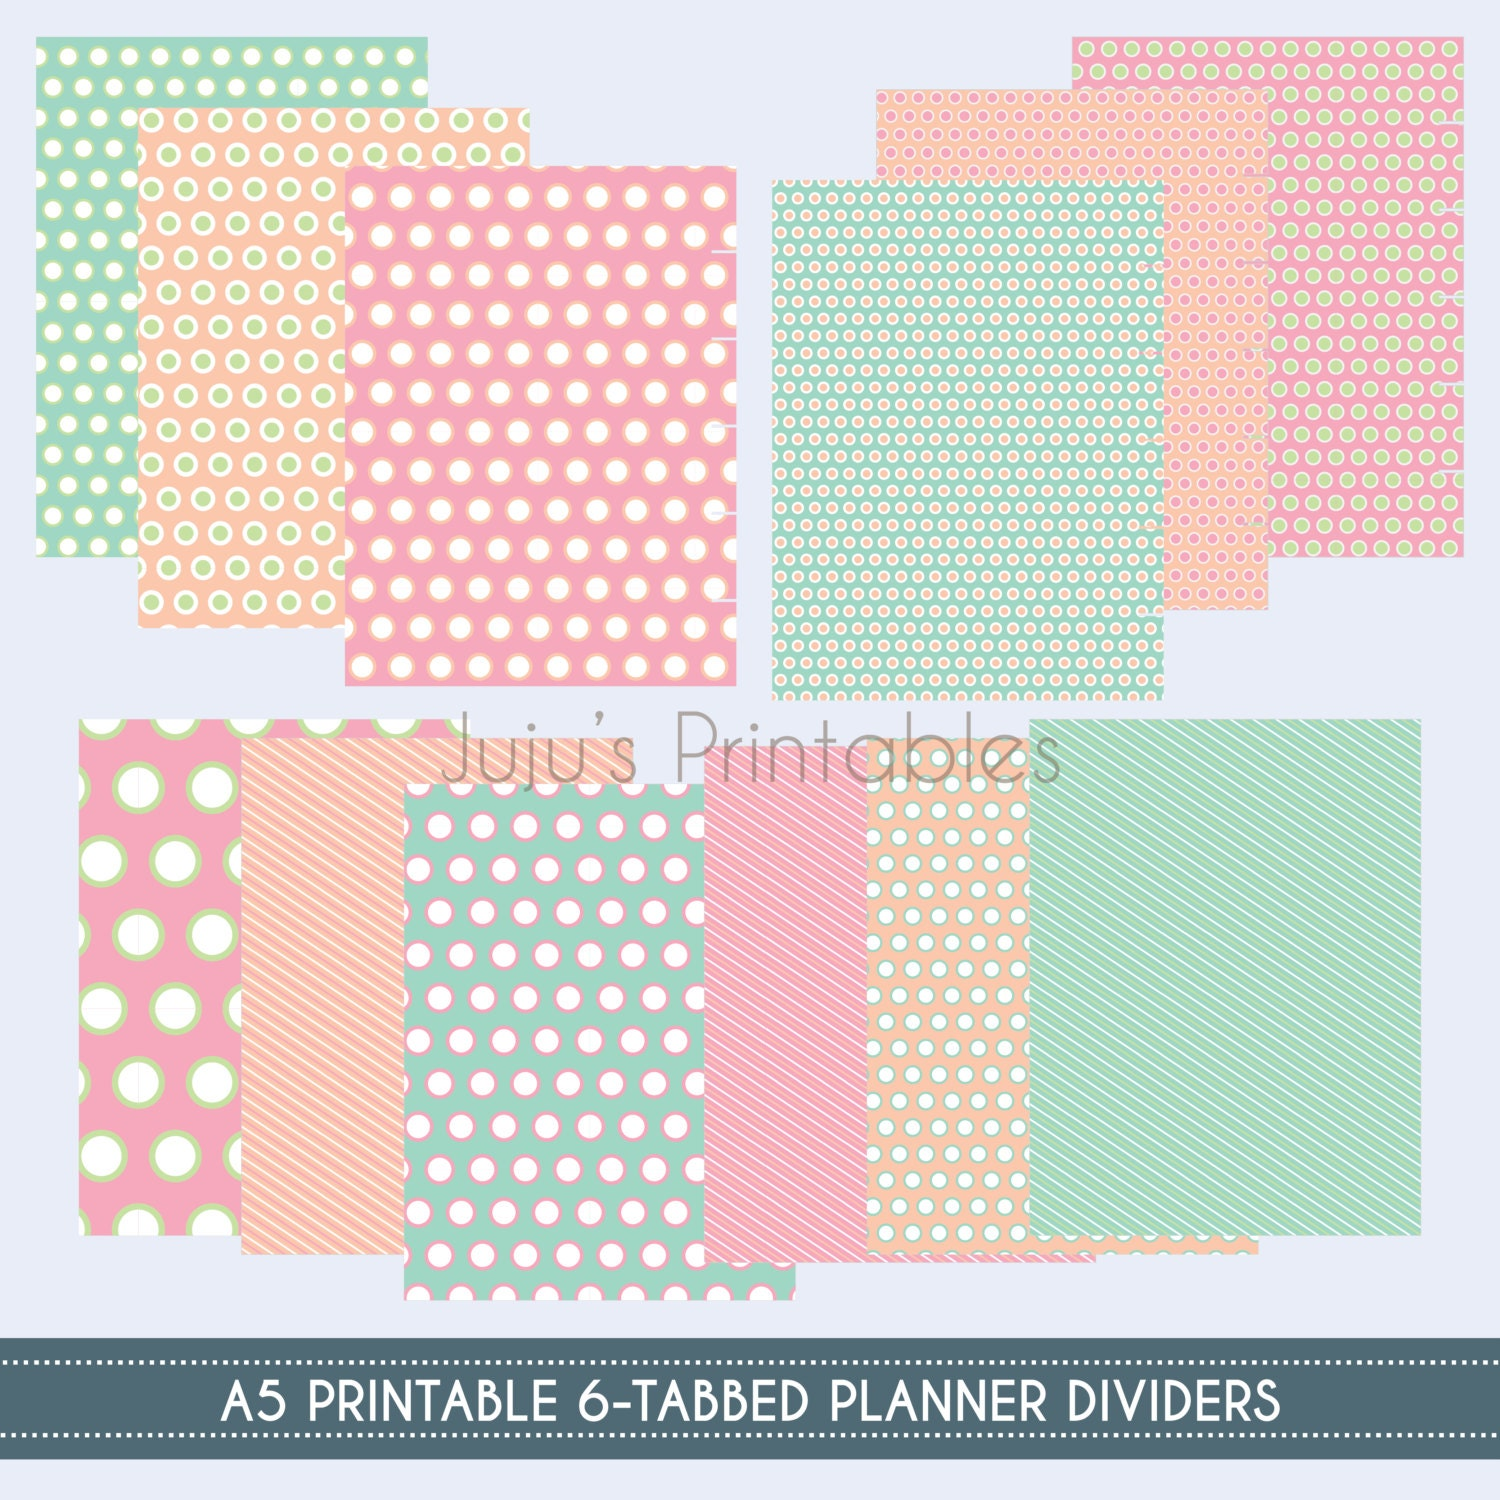 FREE Planner 2018: Design a Life You Love!